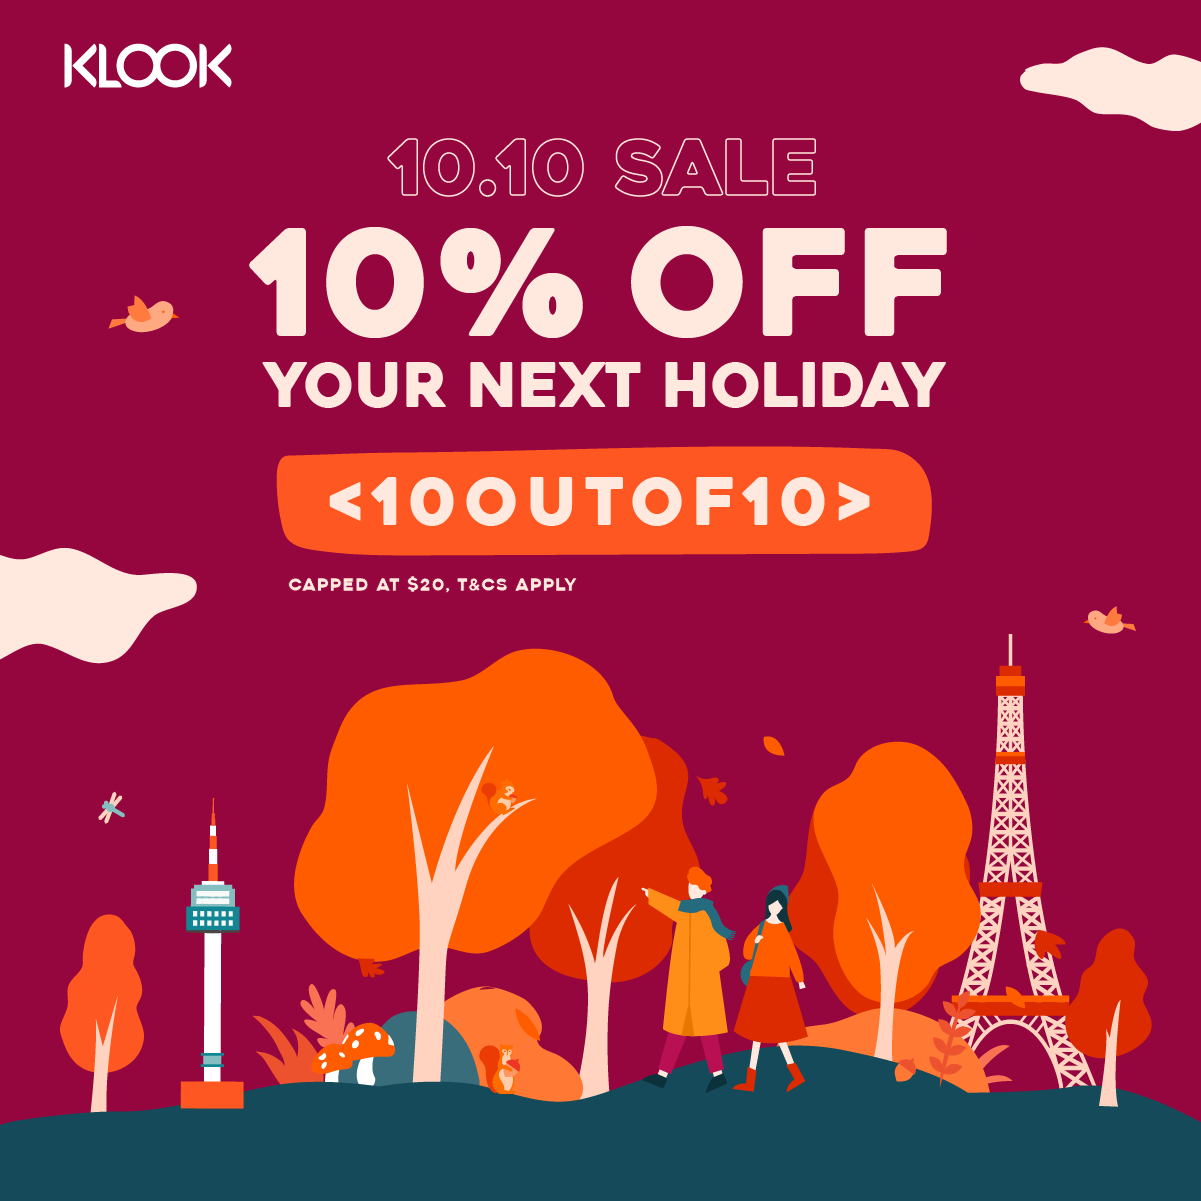 Klook Singapore 10.10 Sale 10% Off Purchases Promotion only on 10 Oct 2019 | Why Not Deals & Promotions